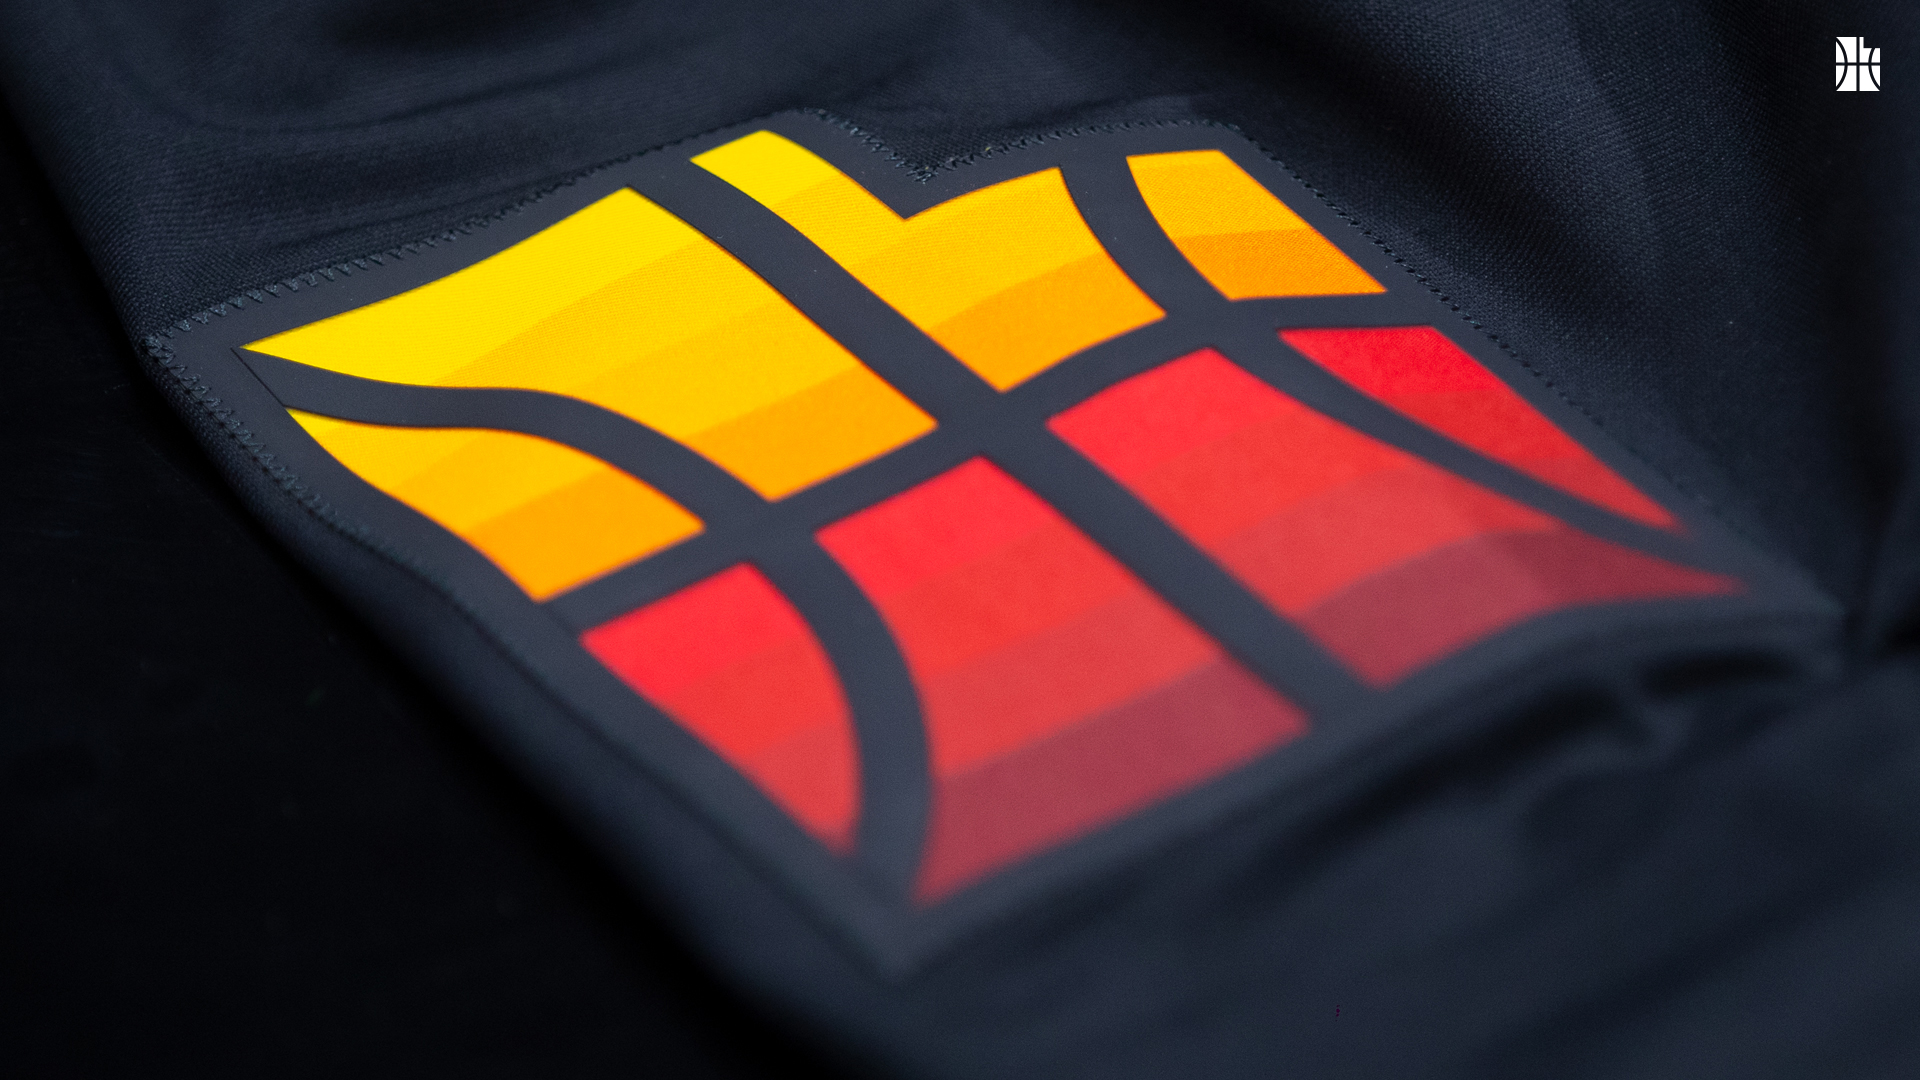 Jazz update City Edition uniforms for 2020-21 season